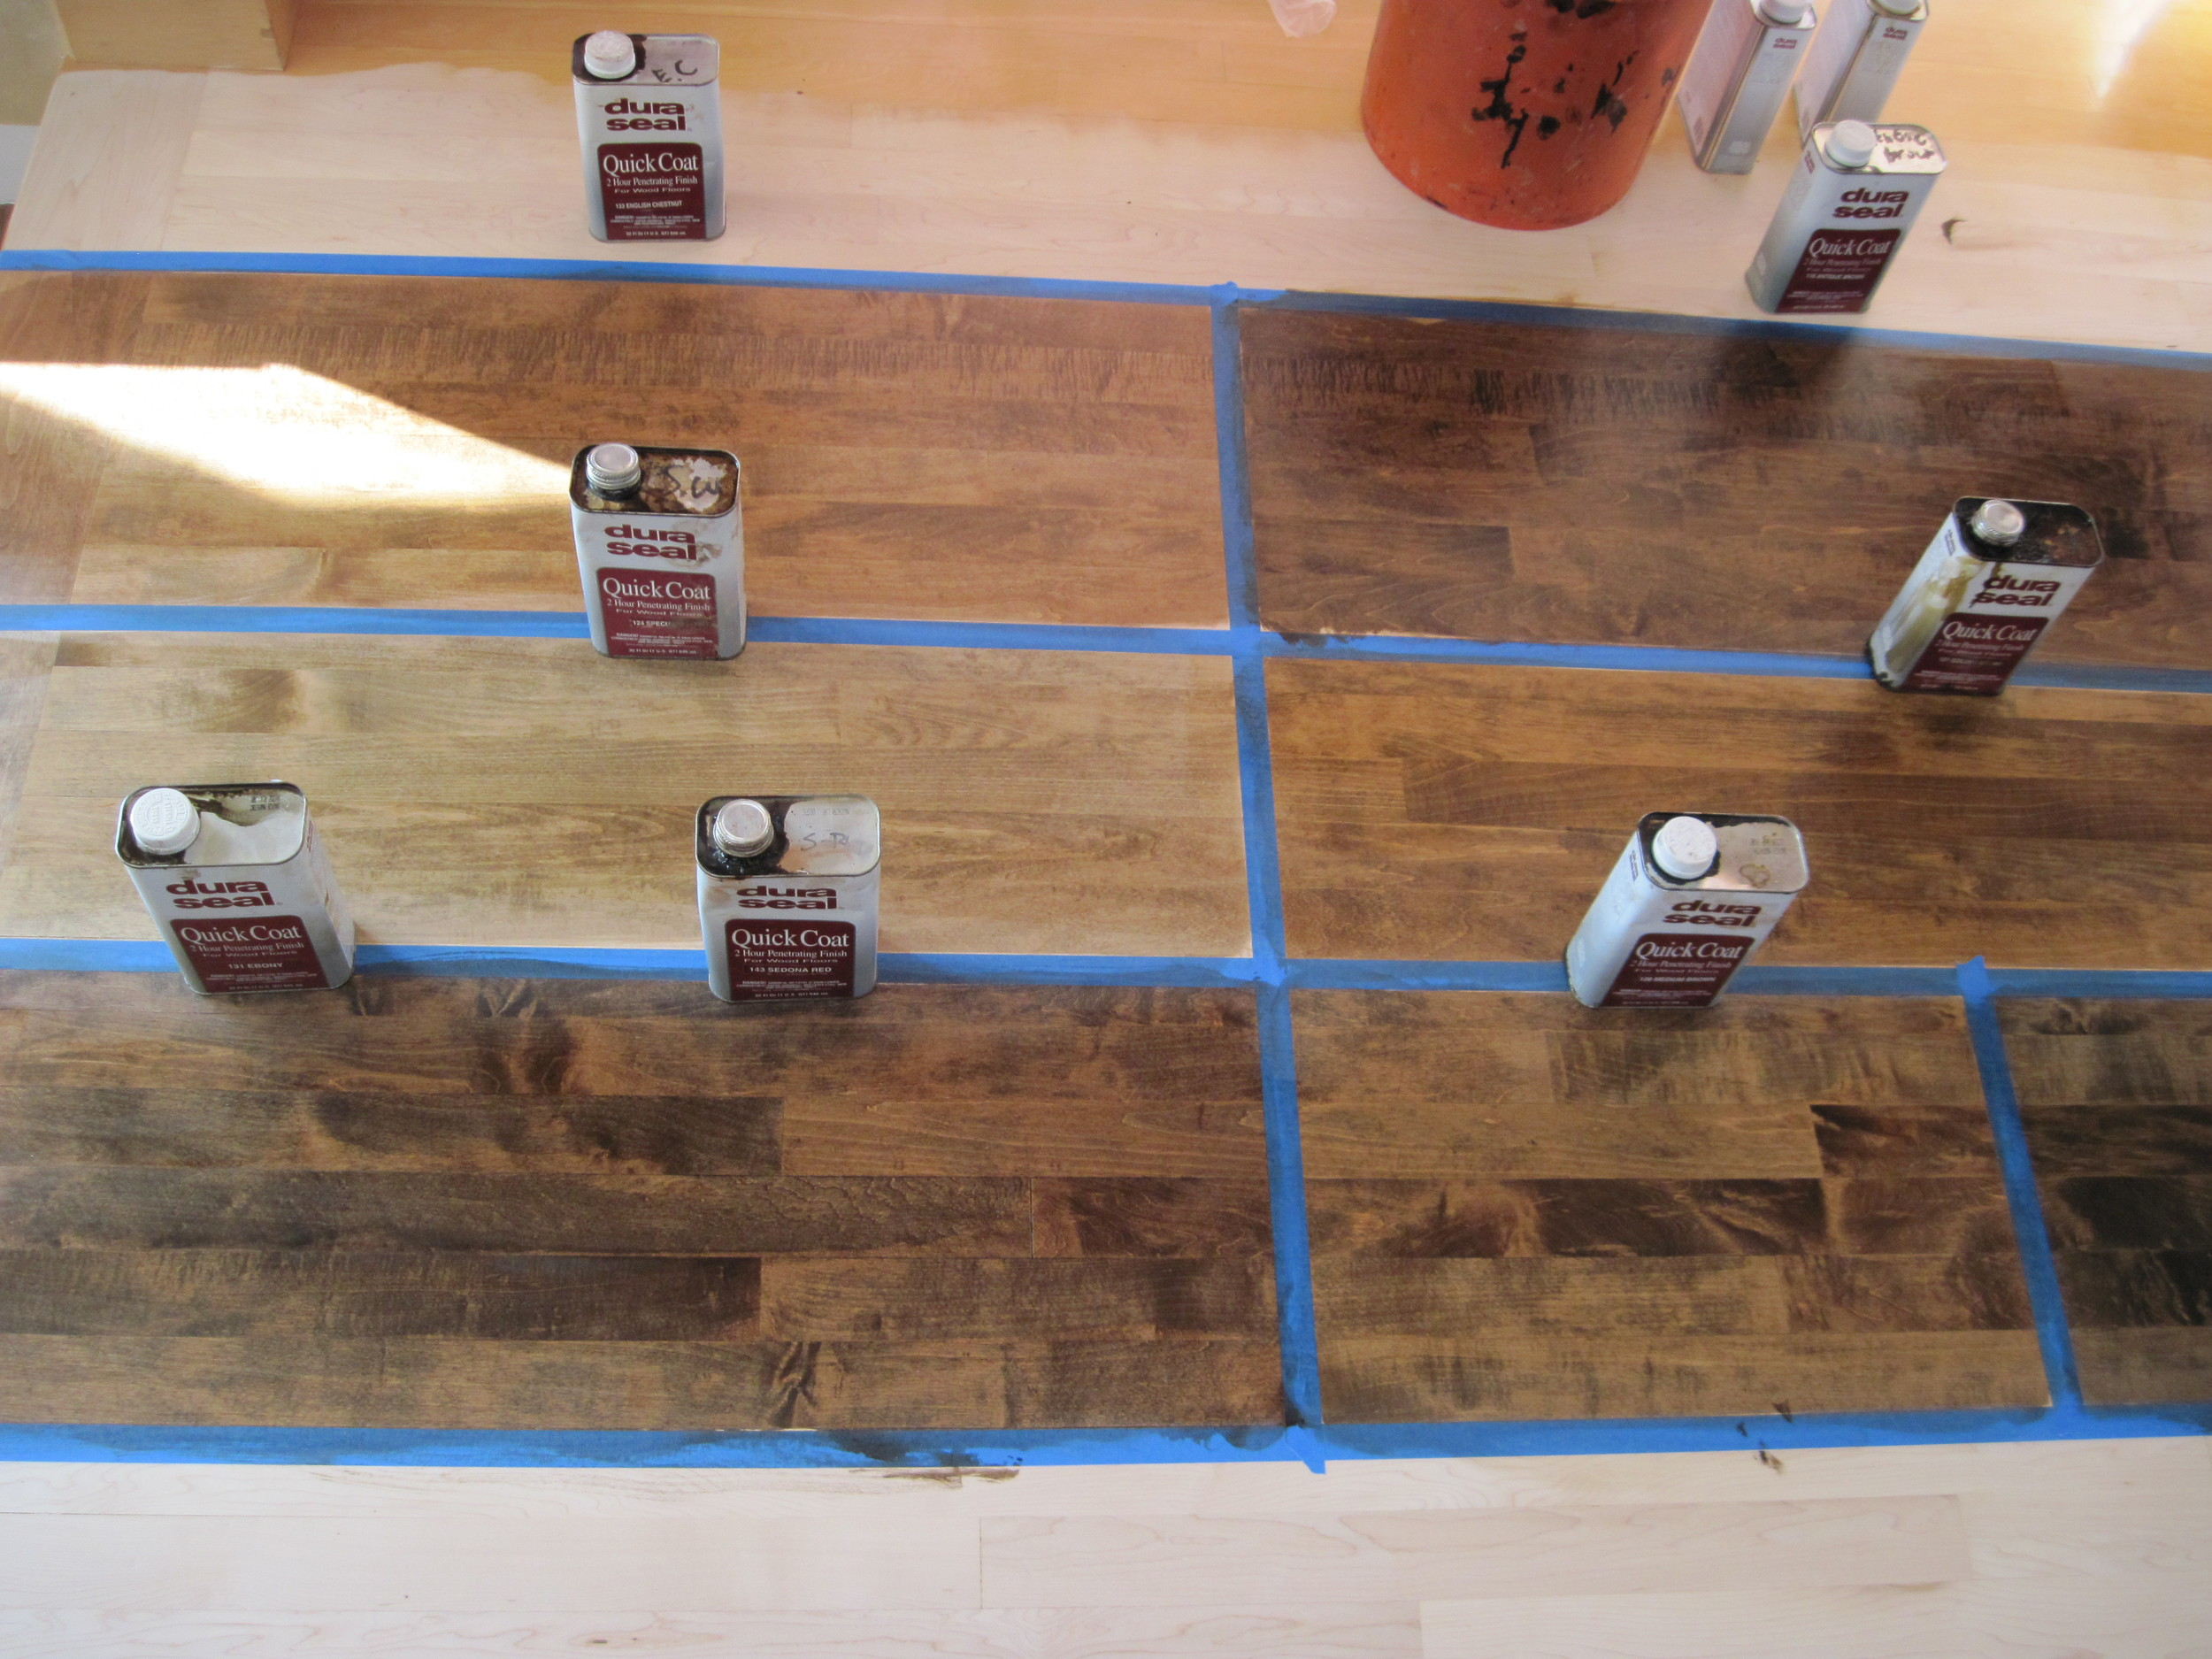 During the sanding phase, different stains can be applied to your floor, so you can choose which you like best. Pictured here: sample stains on maple flooring.